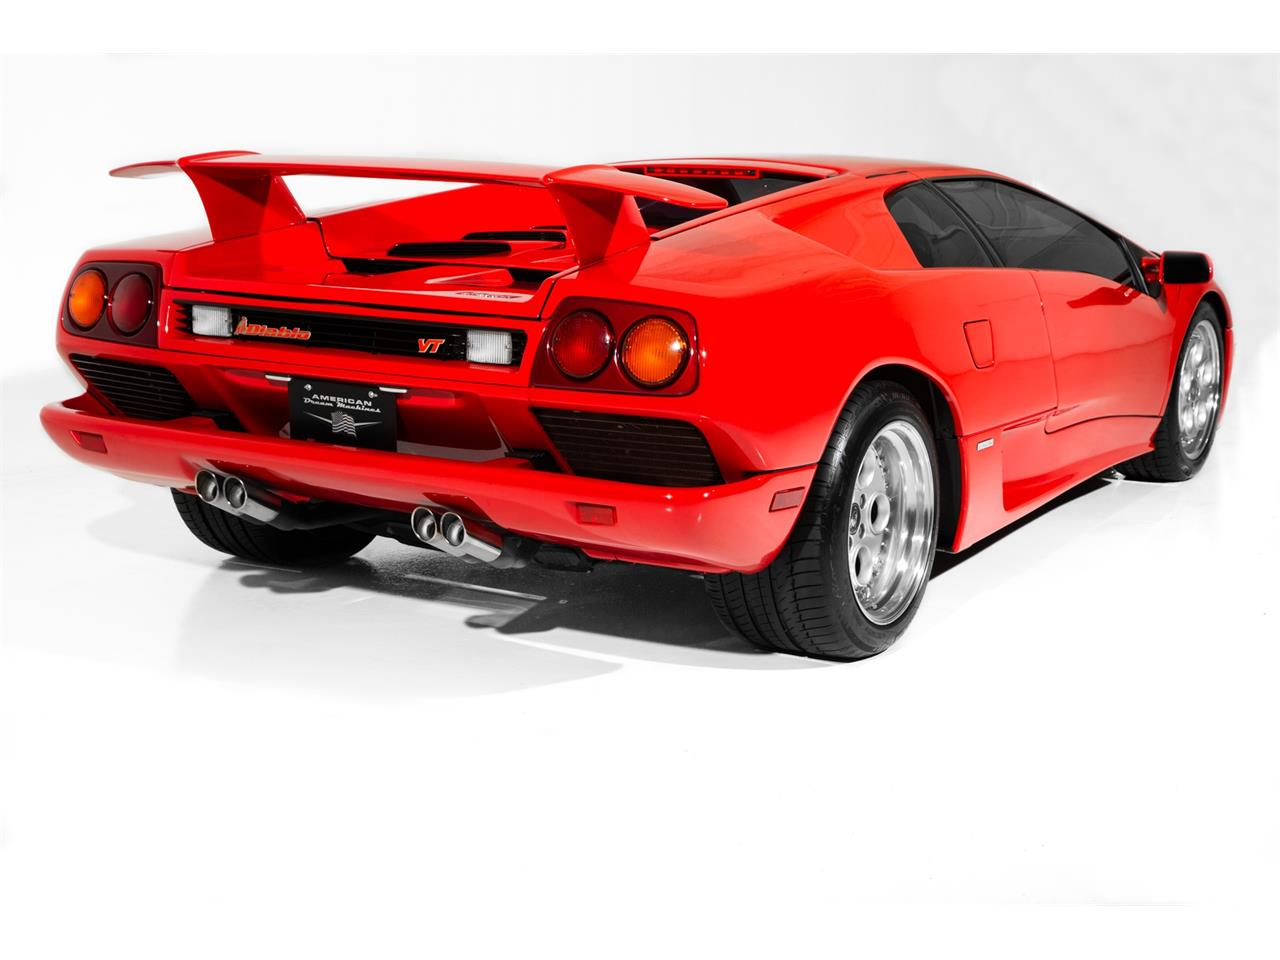 1995 Lamborghini Diablo for sale in Des Moines, IA – photo 2